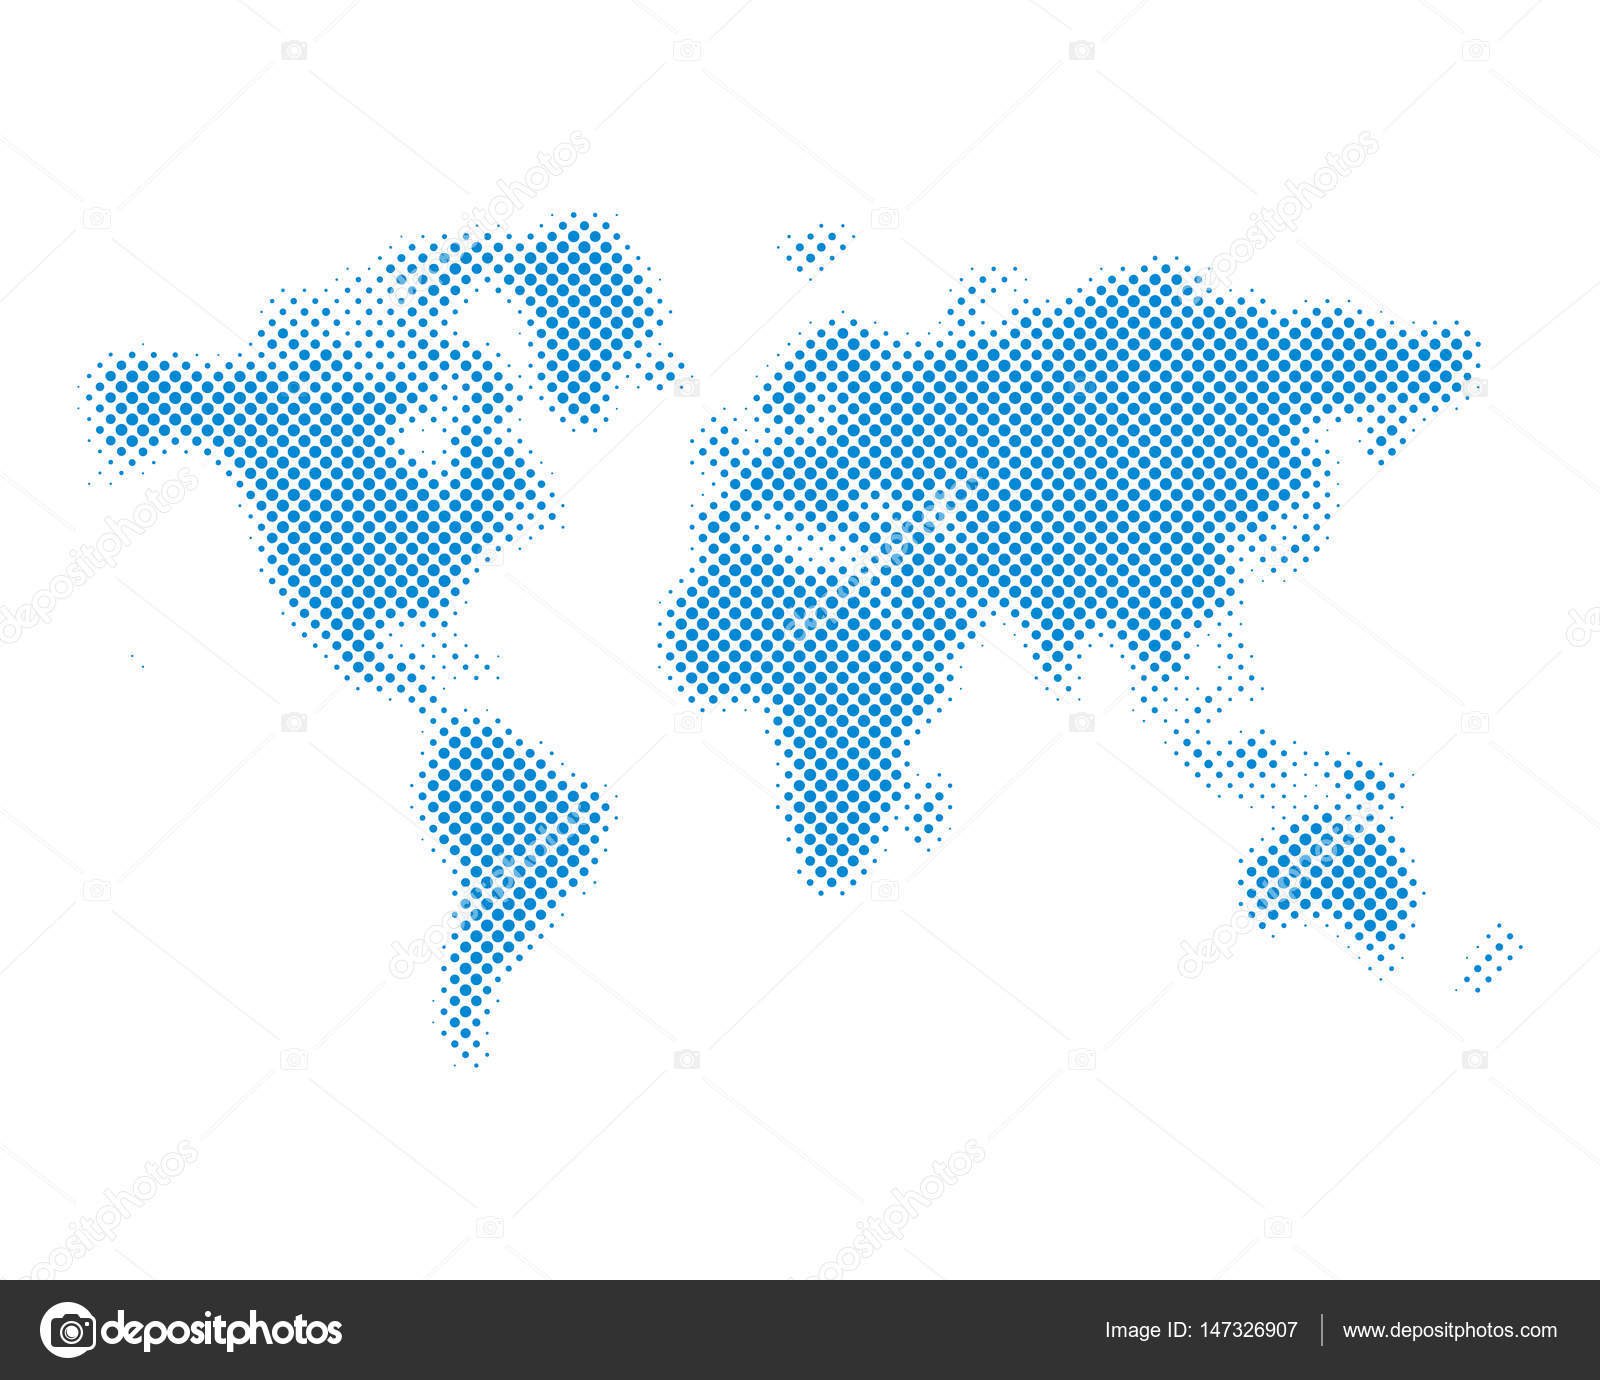 Halftone world map vector illustration stock vector chekman1 blue halftone world map isolated vector illustration dotted map in flat design vector by chekman1 gumiabroncs Images